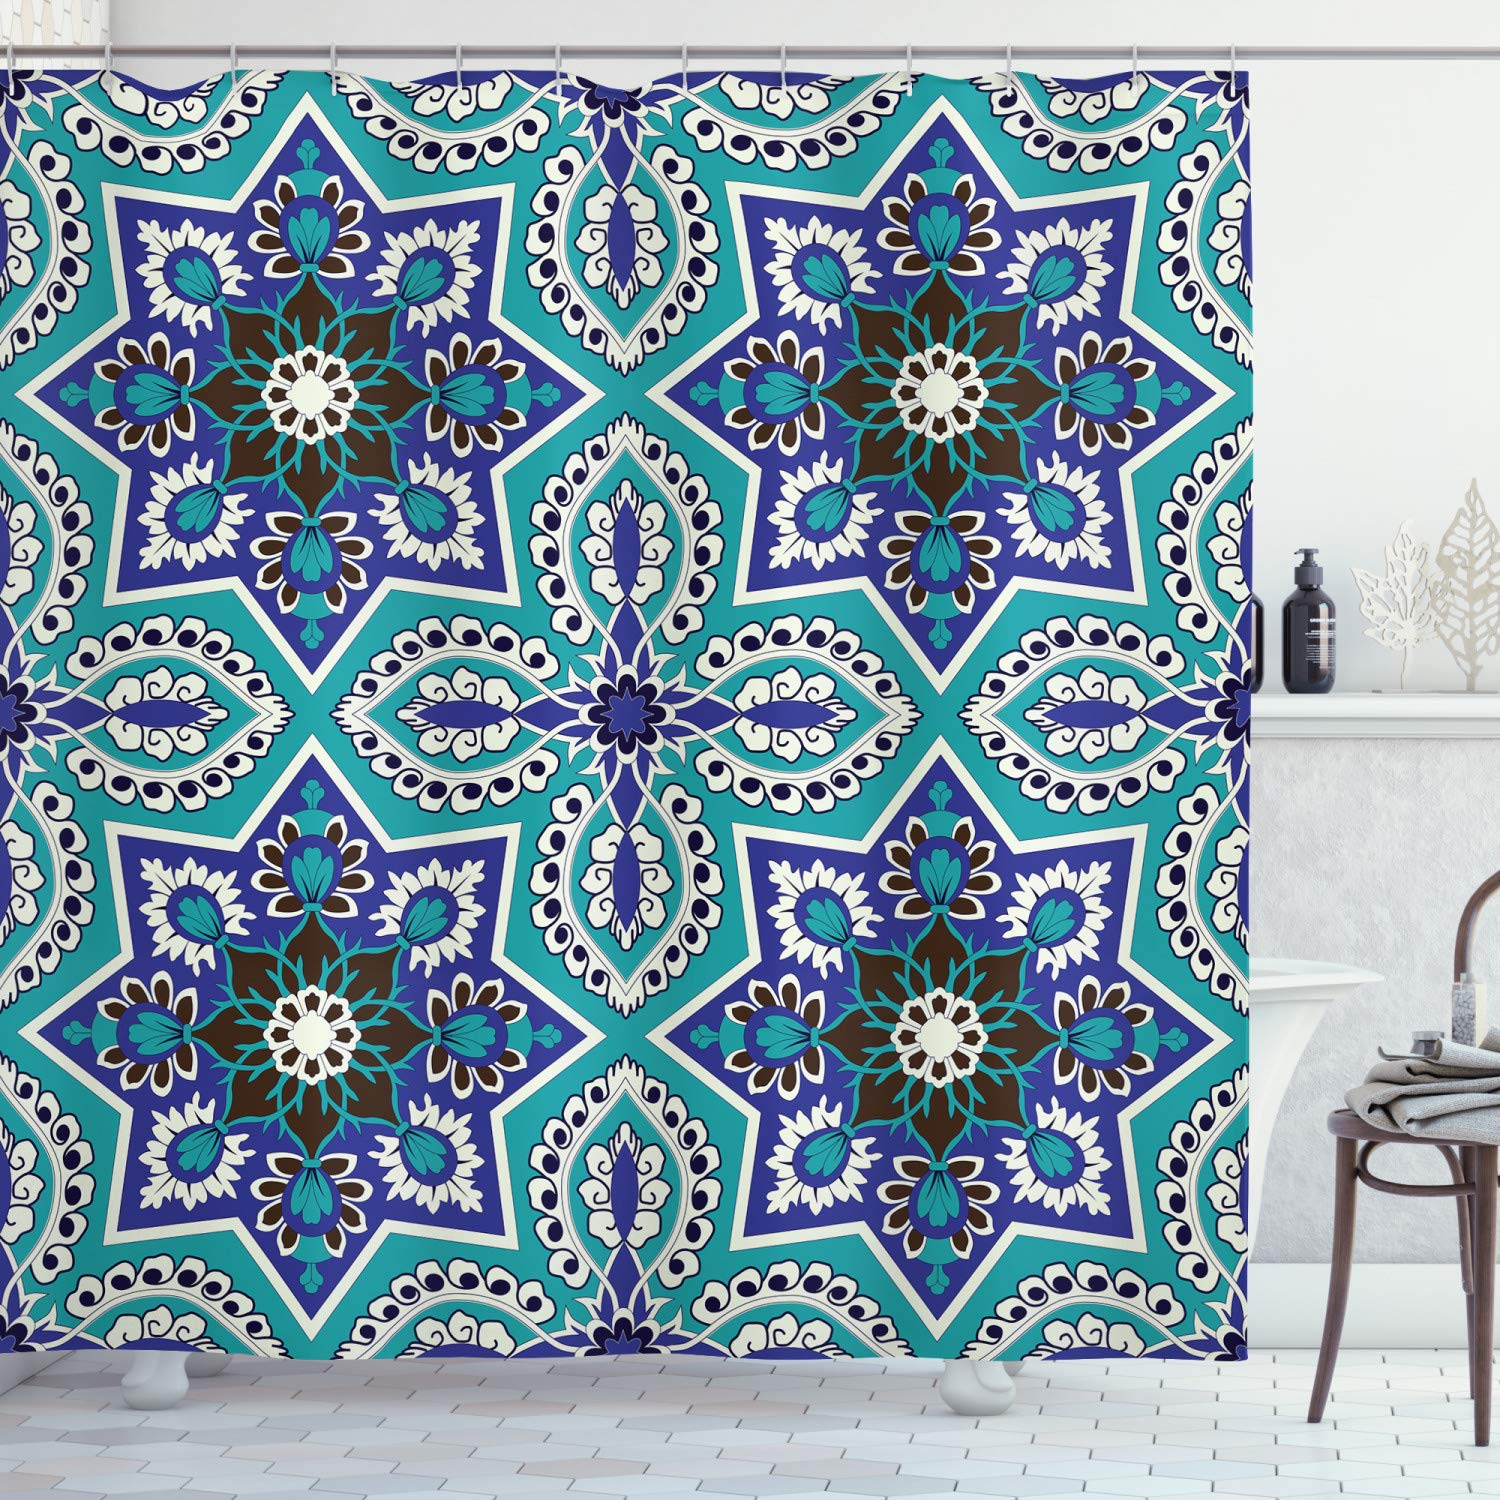 Arabian Shower Curtain by Ambesonne, Arabesque Pattern Tradicional Art Design Geometry Persian Damask Inspired Design, Fabric Bathroom Decor Set with Hooks, 70 Inches, Turquoise